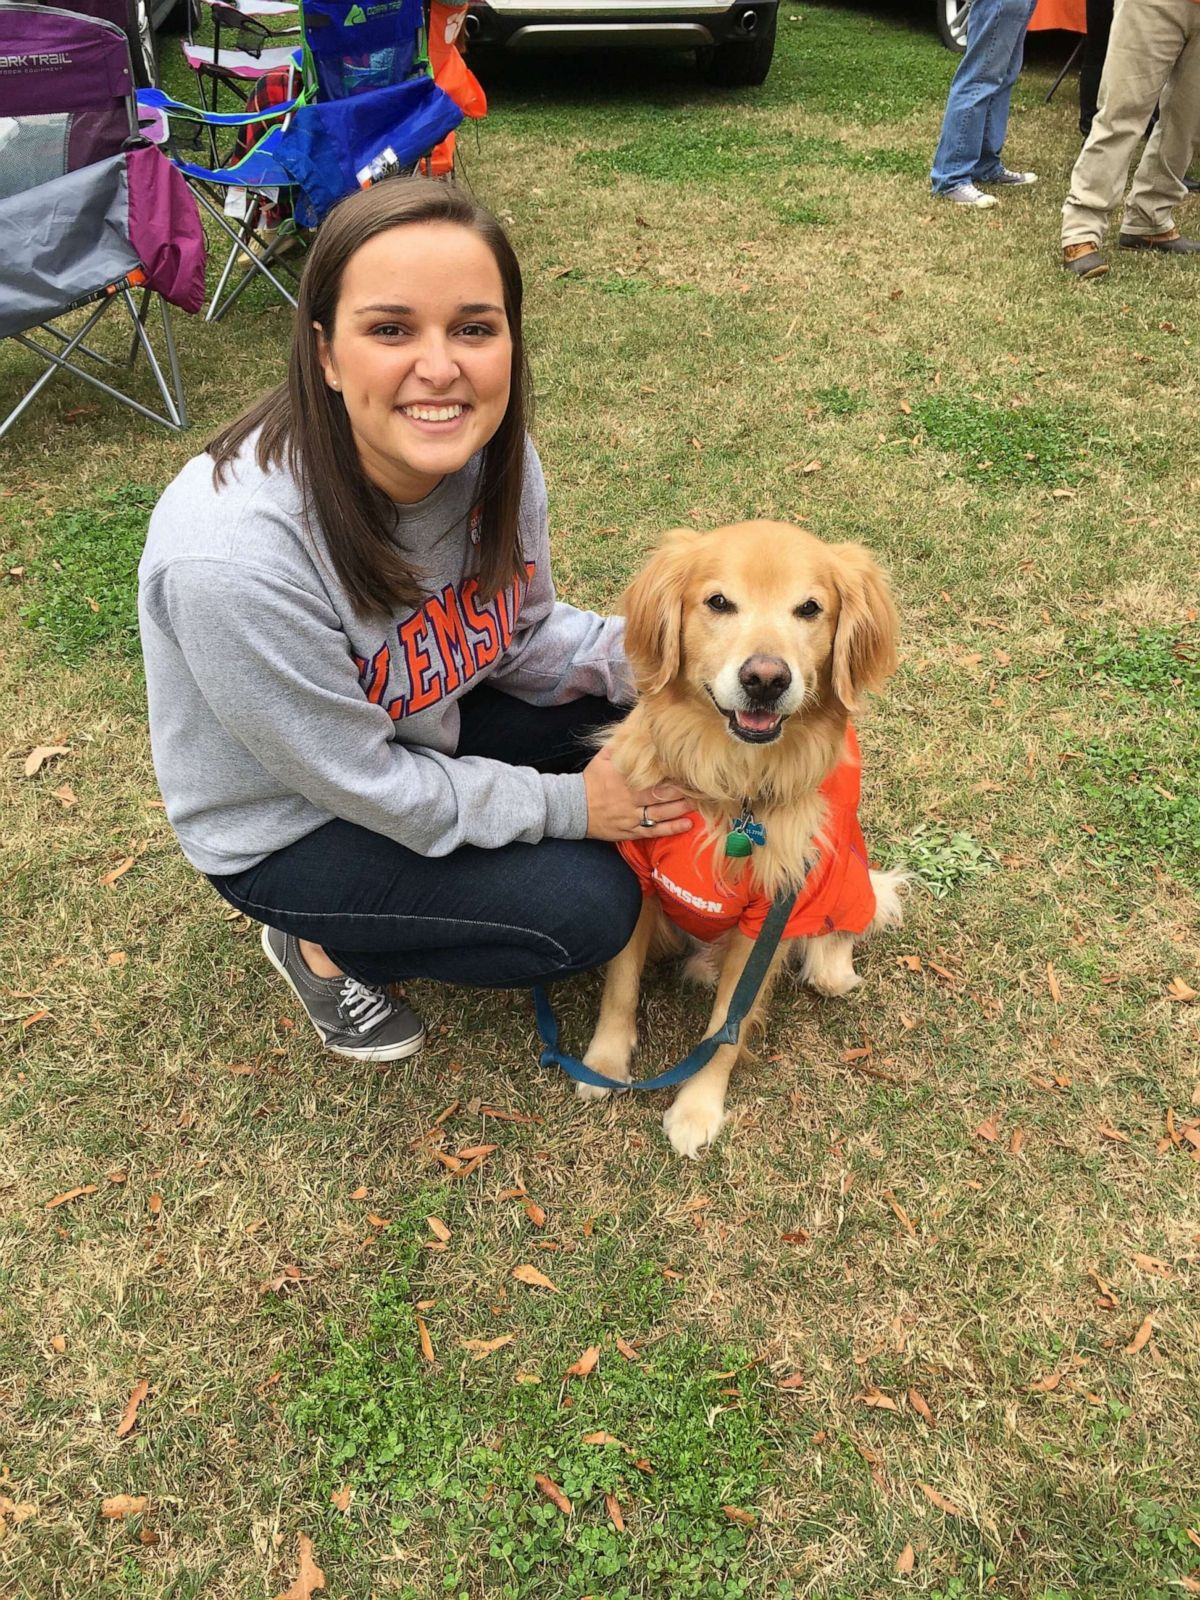 PHOTO: Sallie Hammett of Greenville, South Carolina, shared touching words about her Golden Retriever, Charlie, on Twitter where thousands liked and commented. Charlie did Sept. 13, 2020 at the age of 7 from incurable lymphoma.